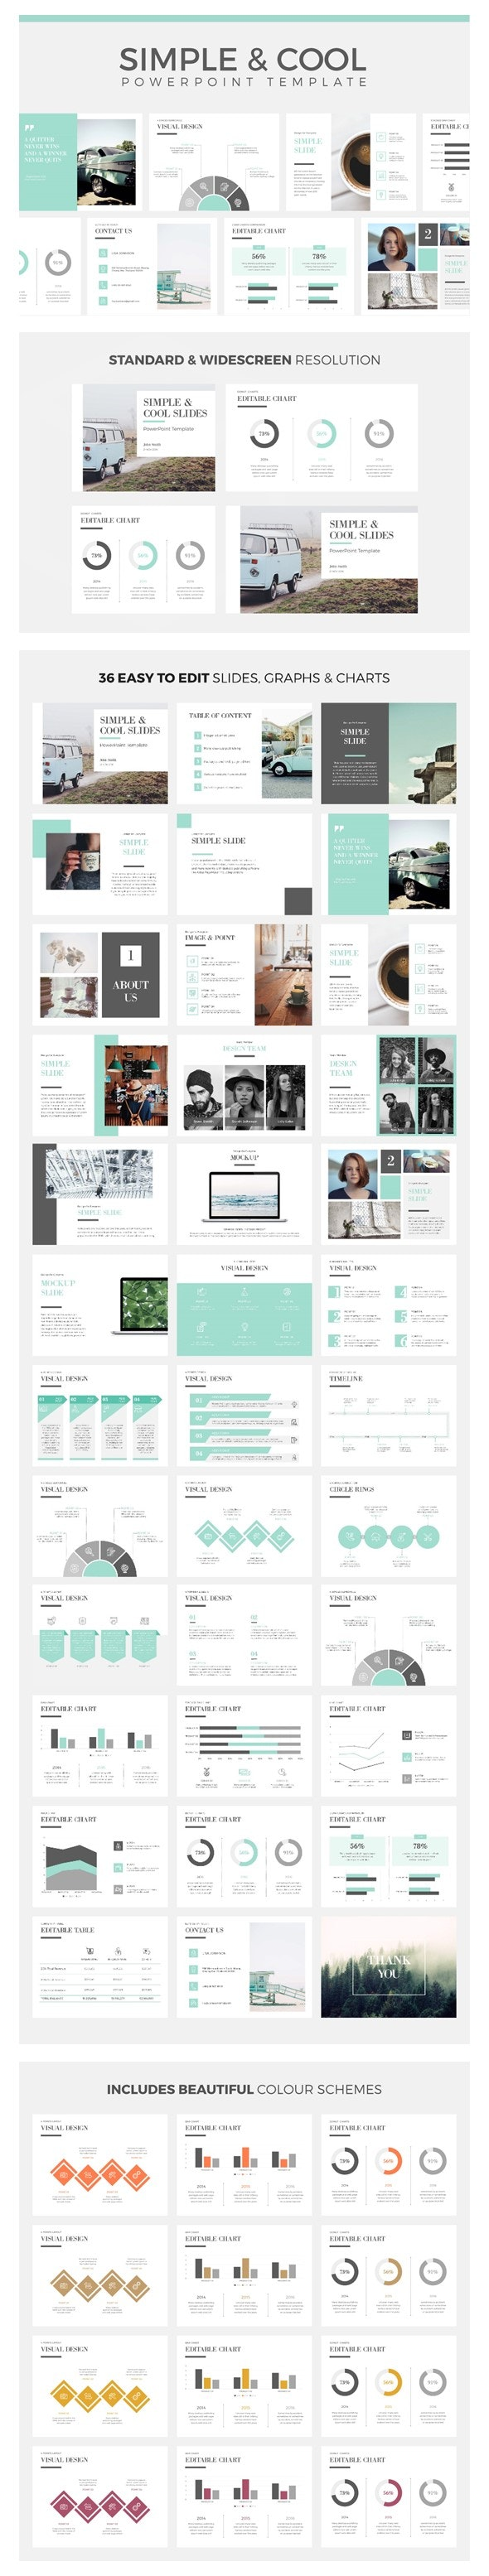 Simple & Cool PowerPoint Template - Creative PowerPoint Templates